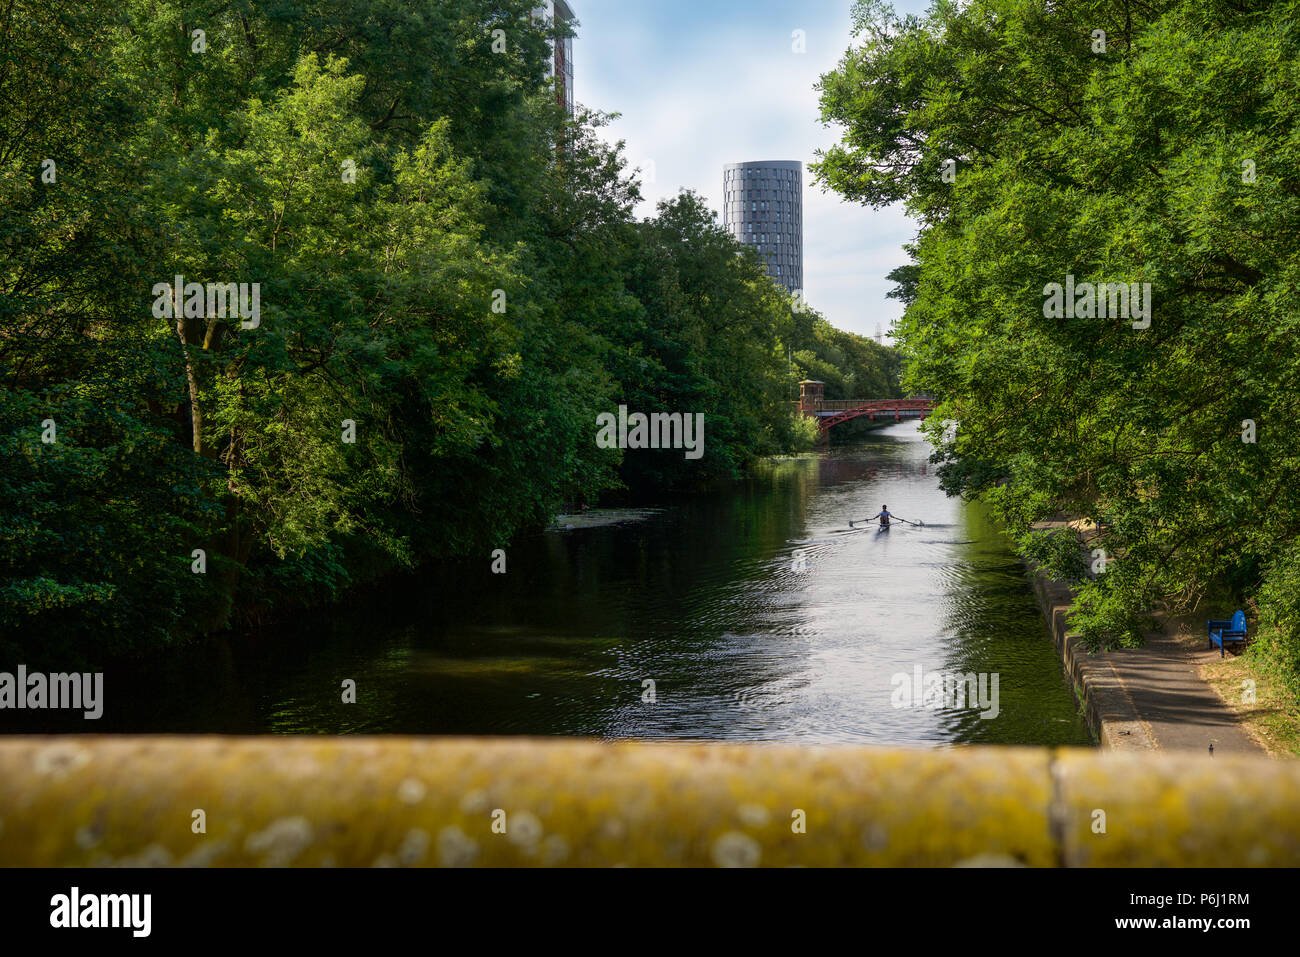 The River Soar Runs through the picturesque City of Leicester - Stock Image